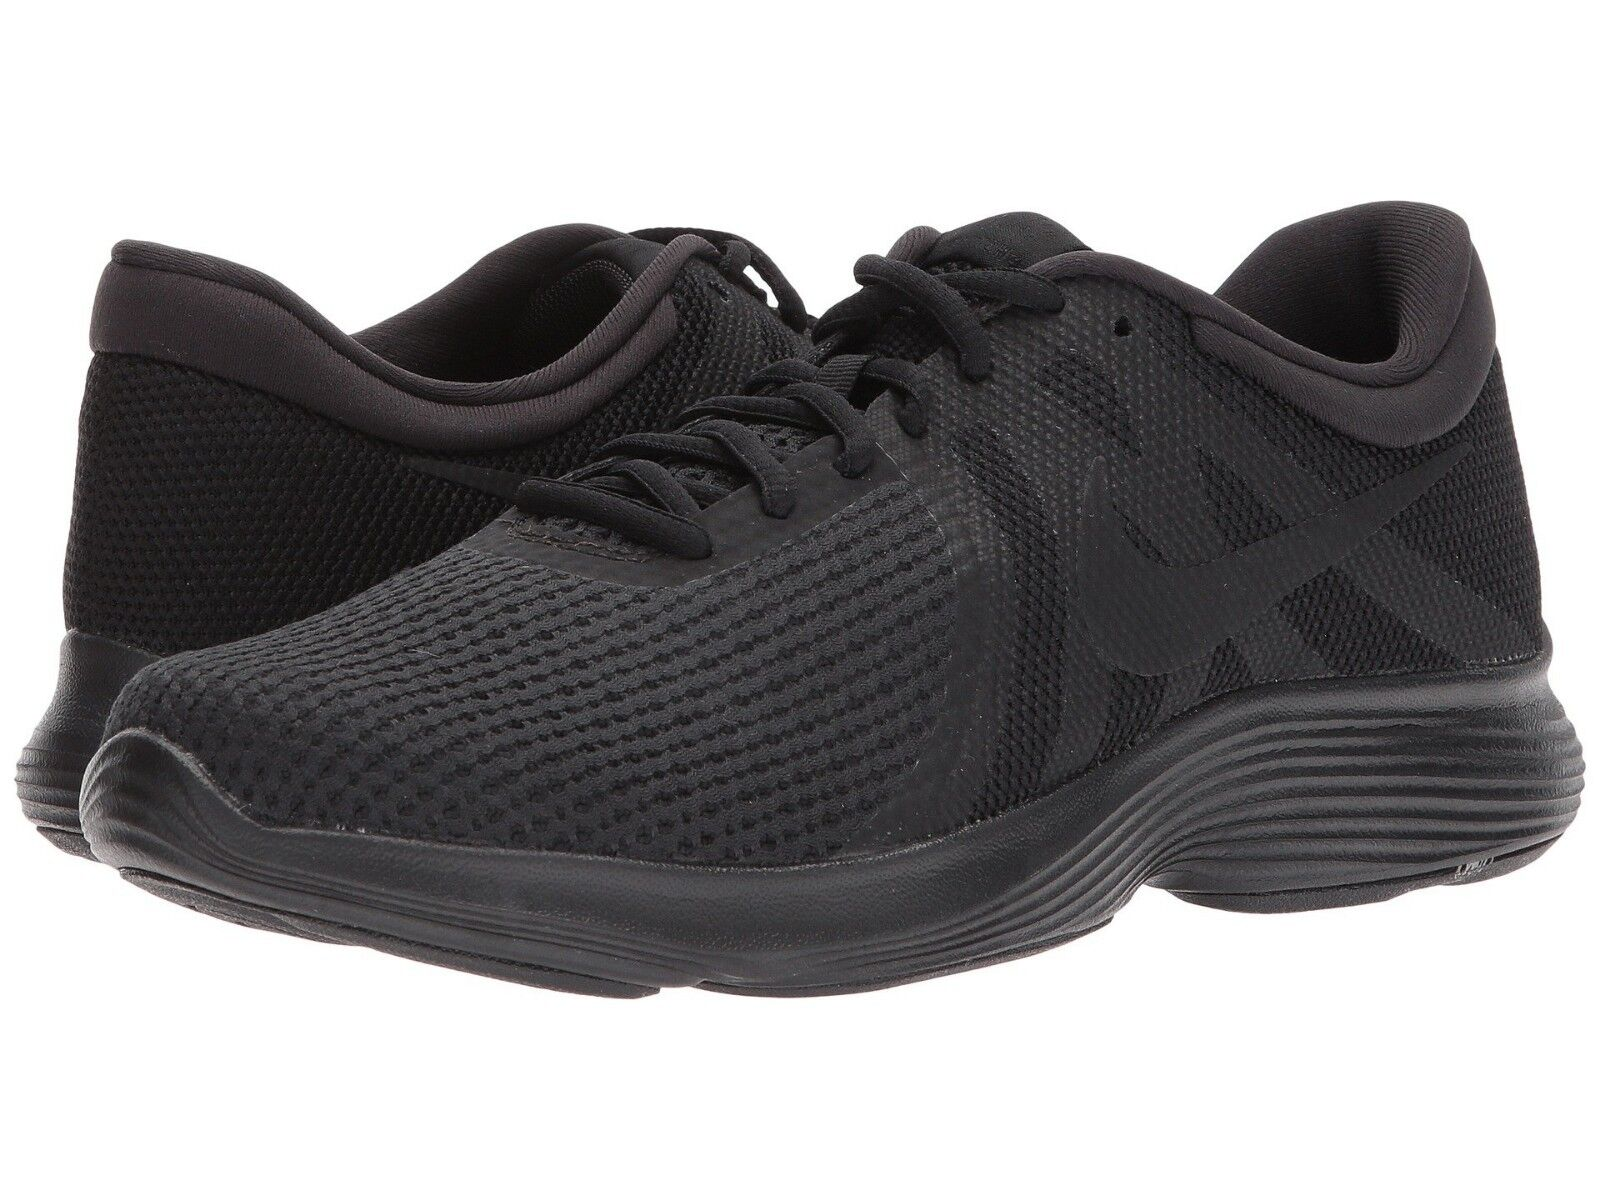 Nike Revolution Shoes 4 MENS Black 908988 002  Running Shoes Revolution 9 - 13 4c7cac